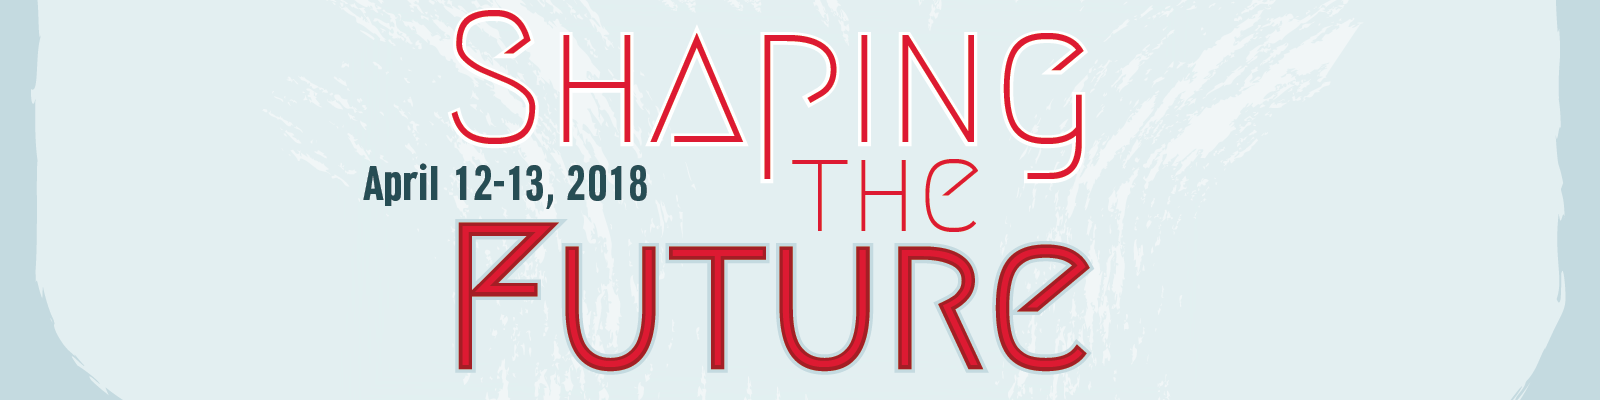 Nebraska Forum on Digital Humanities 2018: Shaping the Future